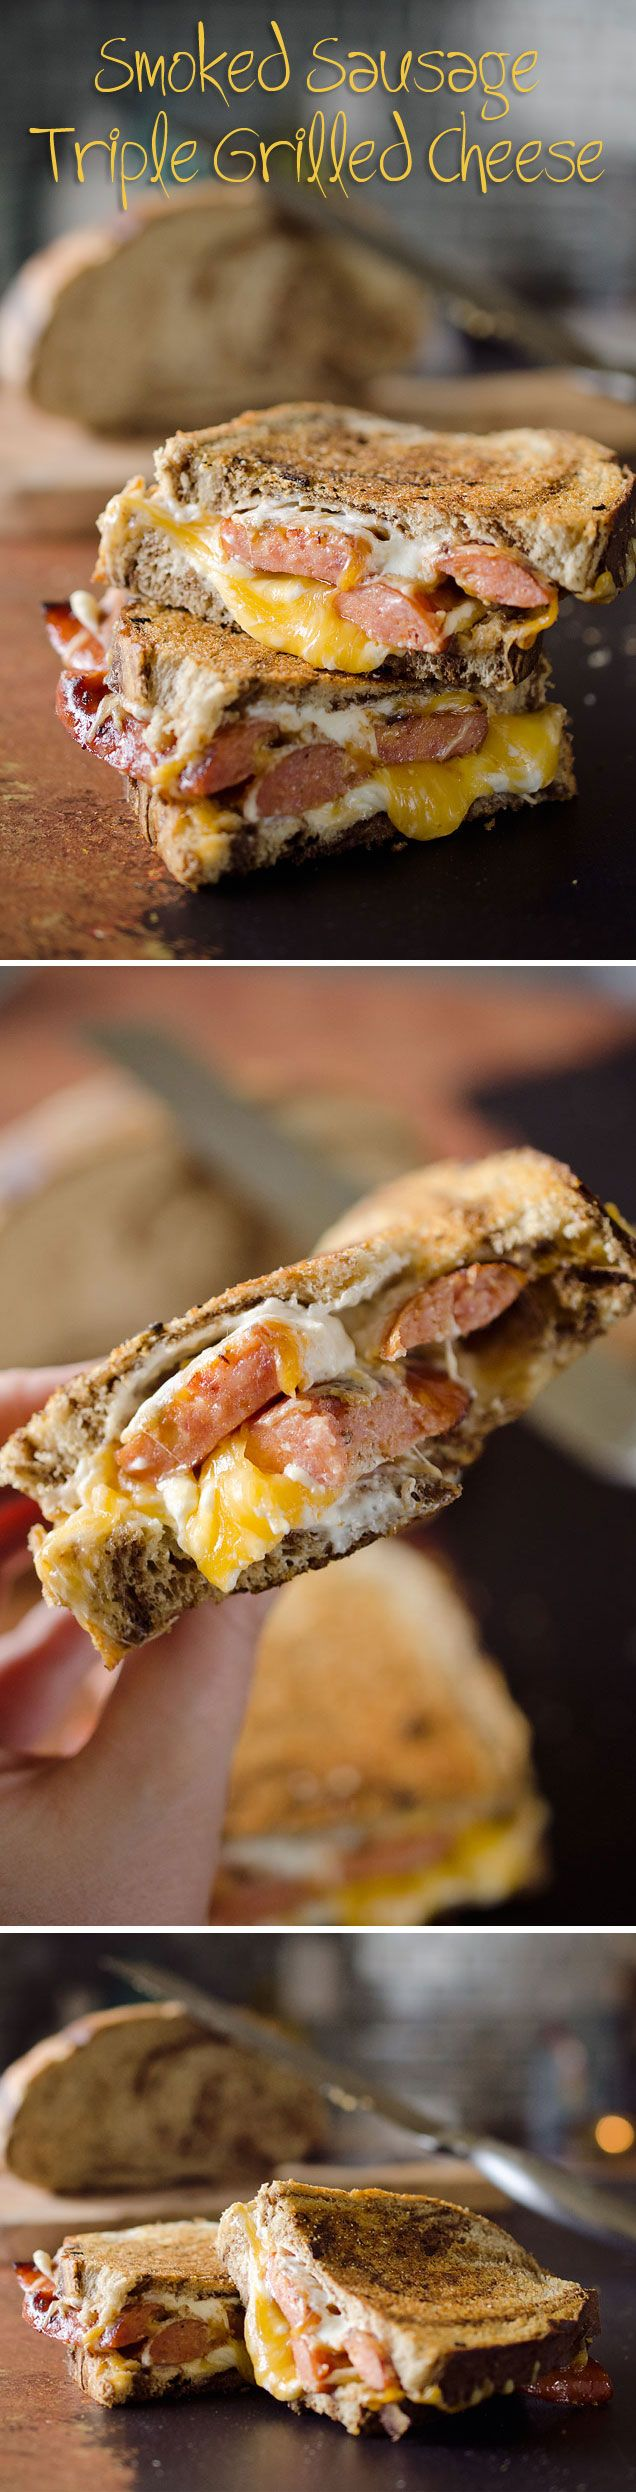 Smoked Sausage Triple Grilled Cheese - An amazing sandwich with juicy sausage and creamy gouda, cheddar and cream cheese layered between two pieces of marble rye bread.